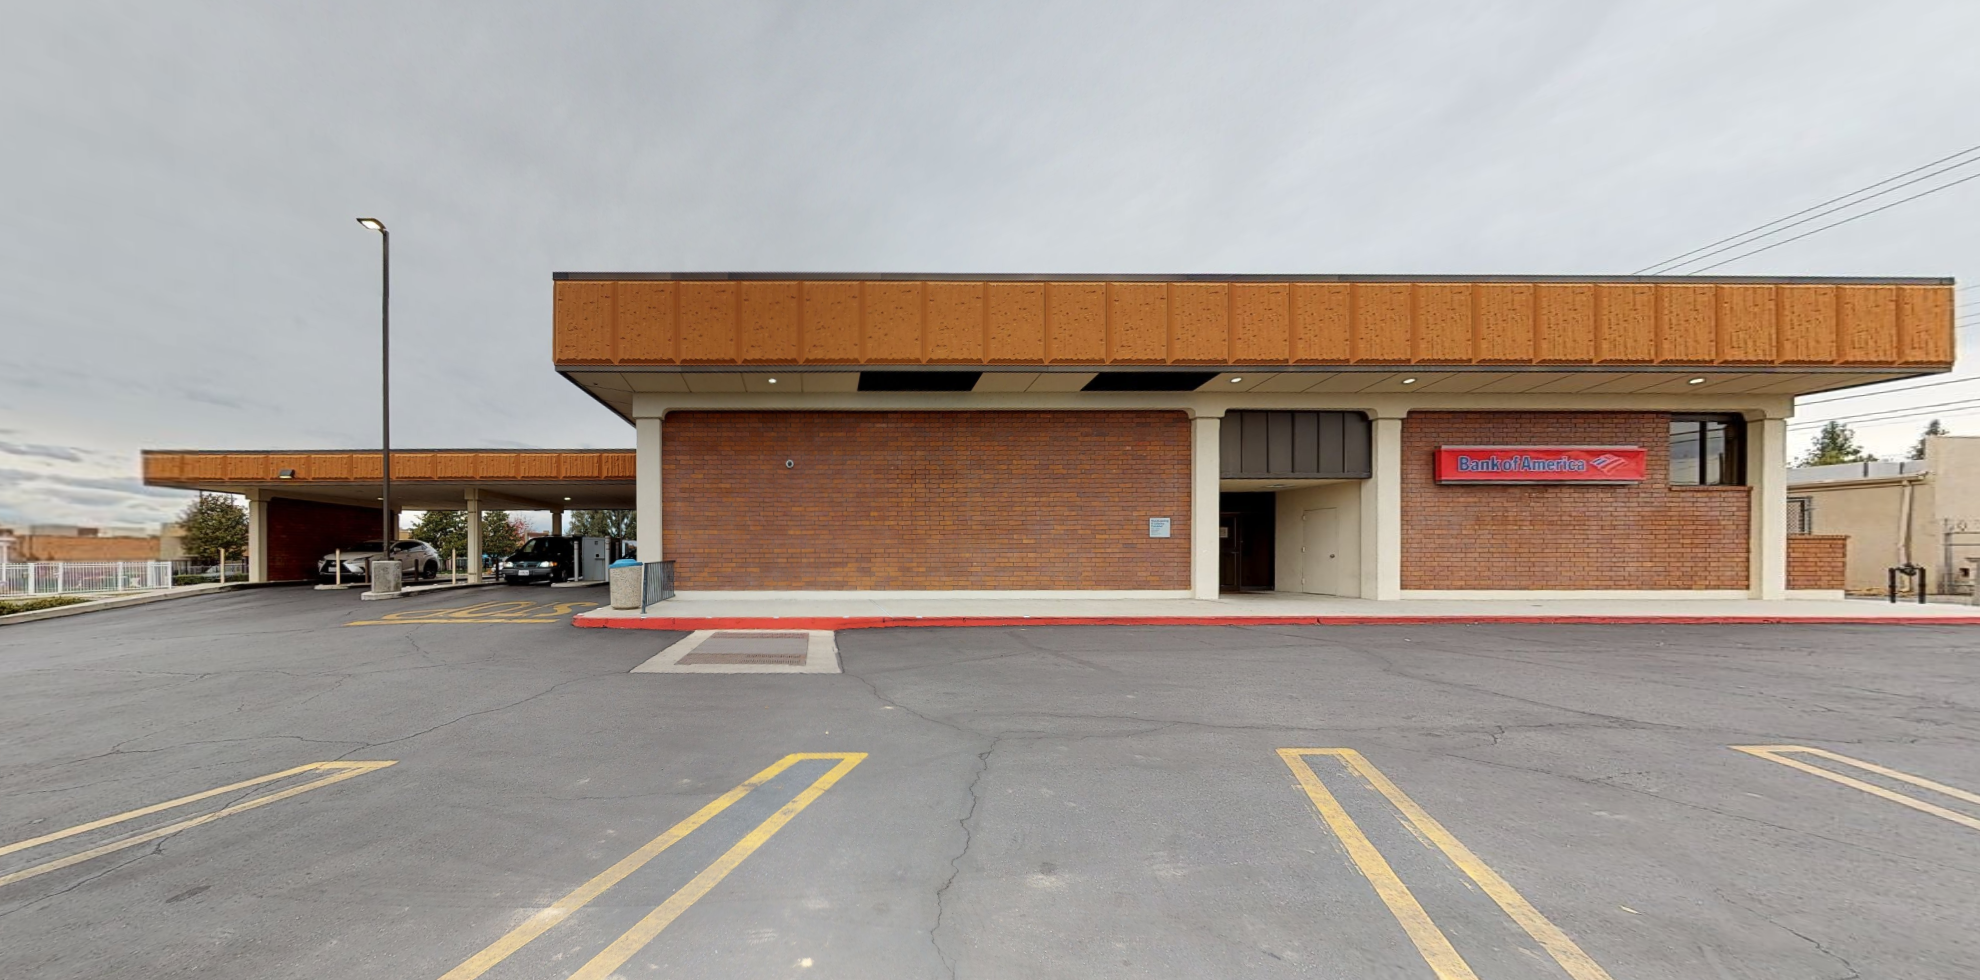 Bank of America financial center with drive-thru ATM | 1201 Baker St, Bakersfield, CA 93305